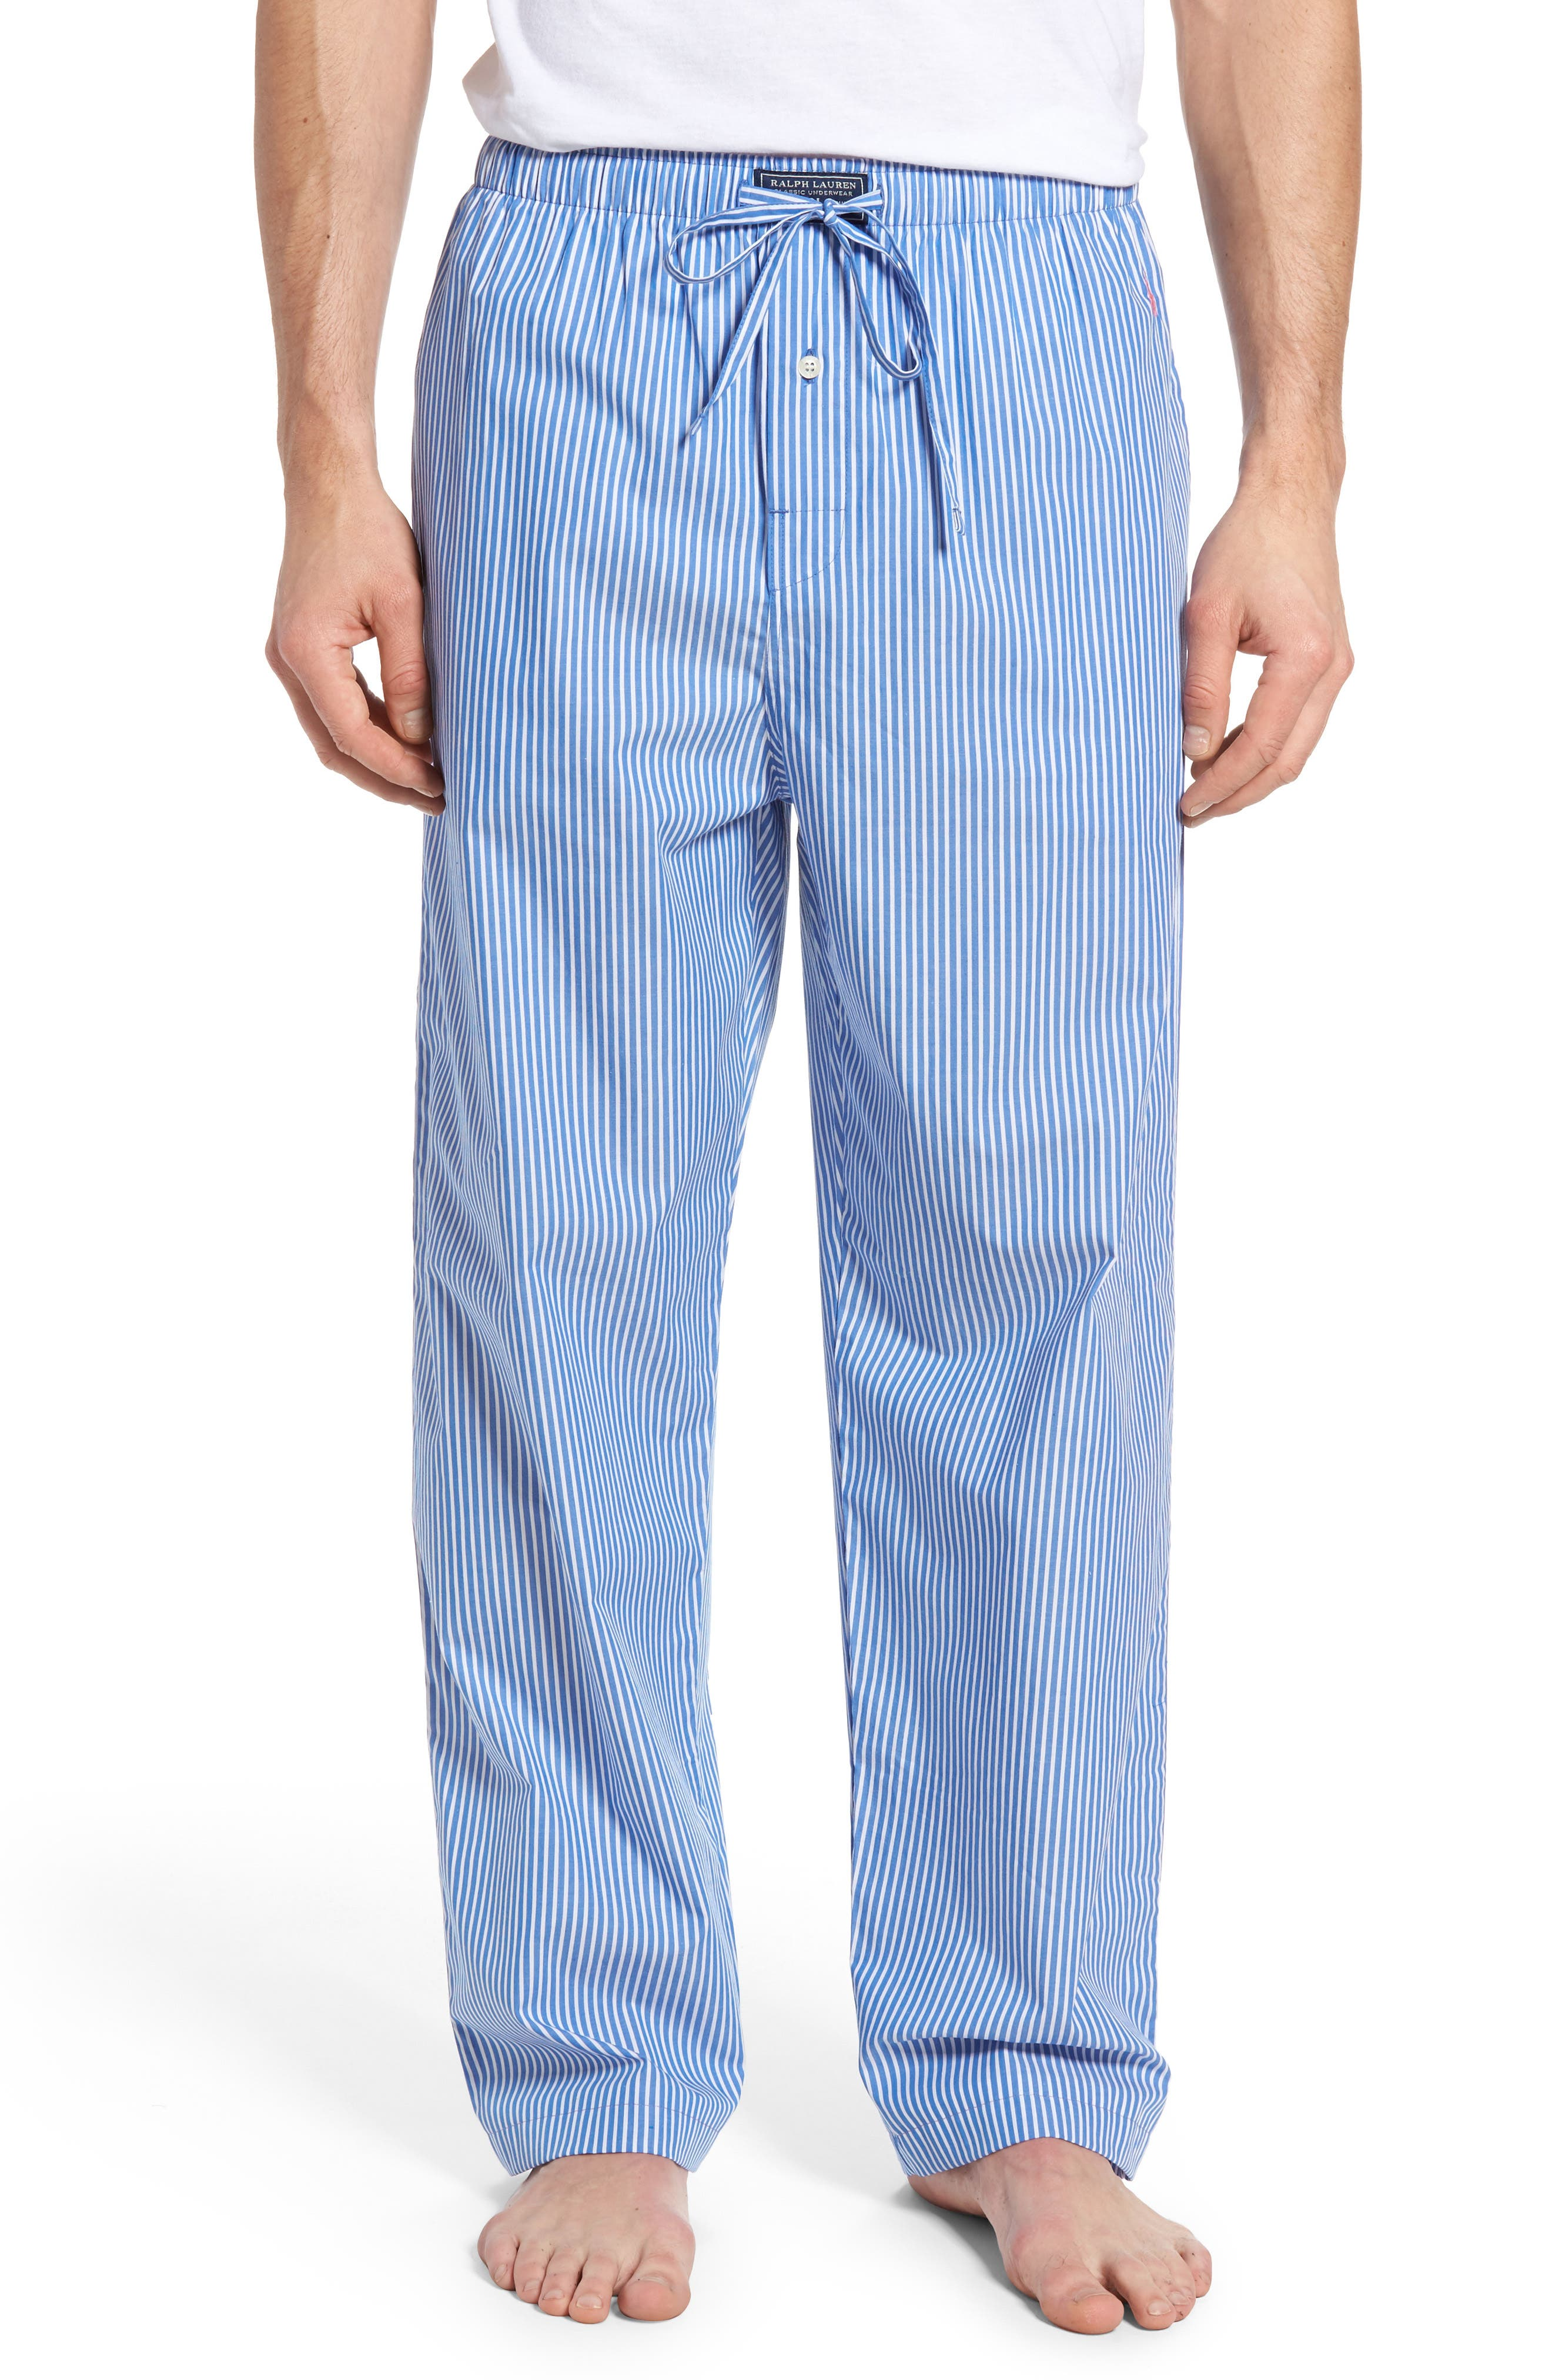 Cotton Lounge Pants,                         Main,                         color, King Blue Stripe